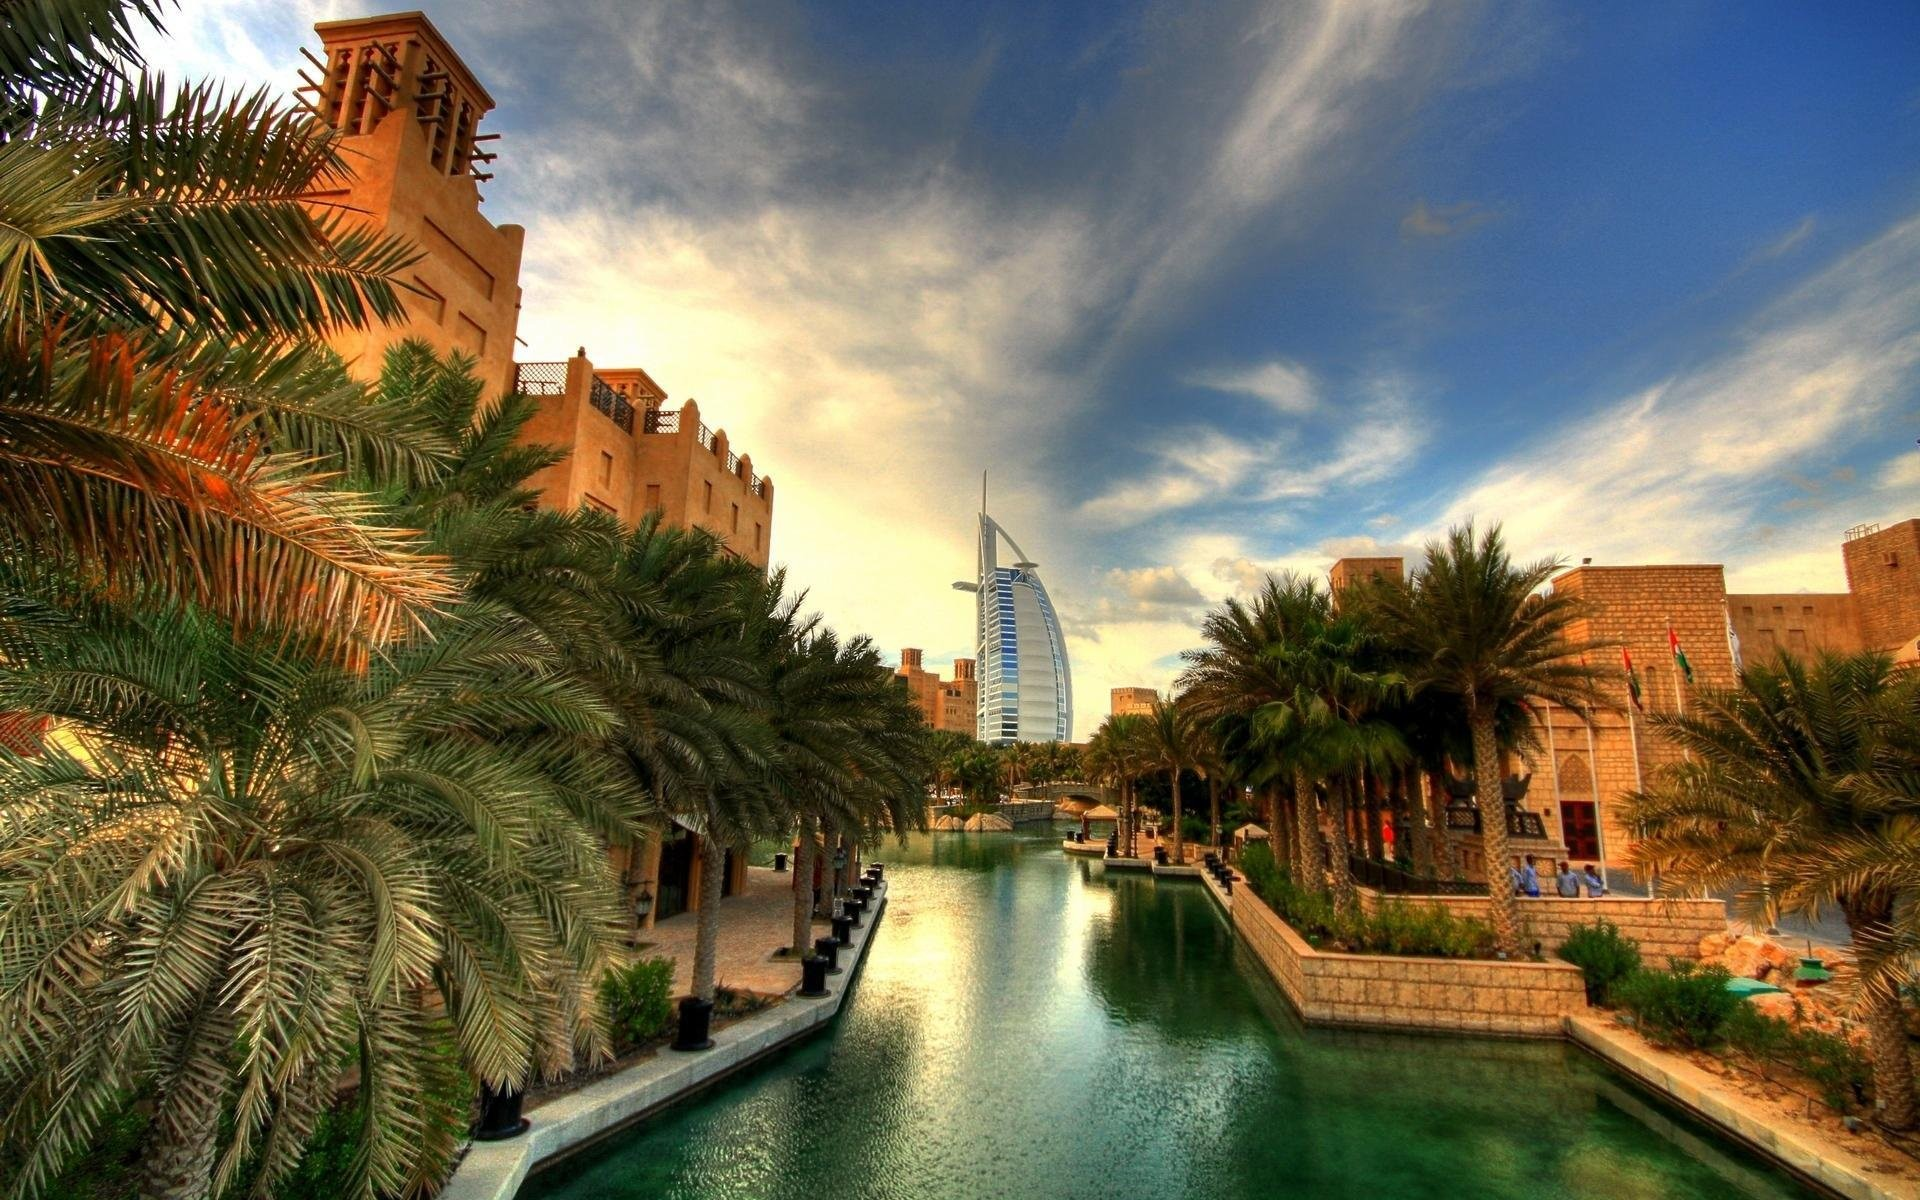 wallpapers of beautiful places 183��